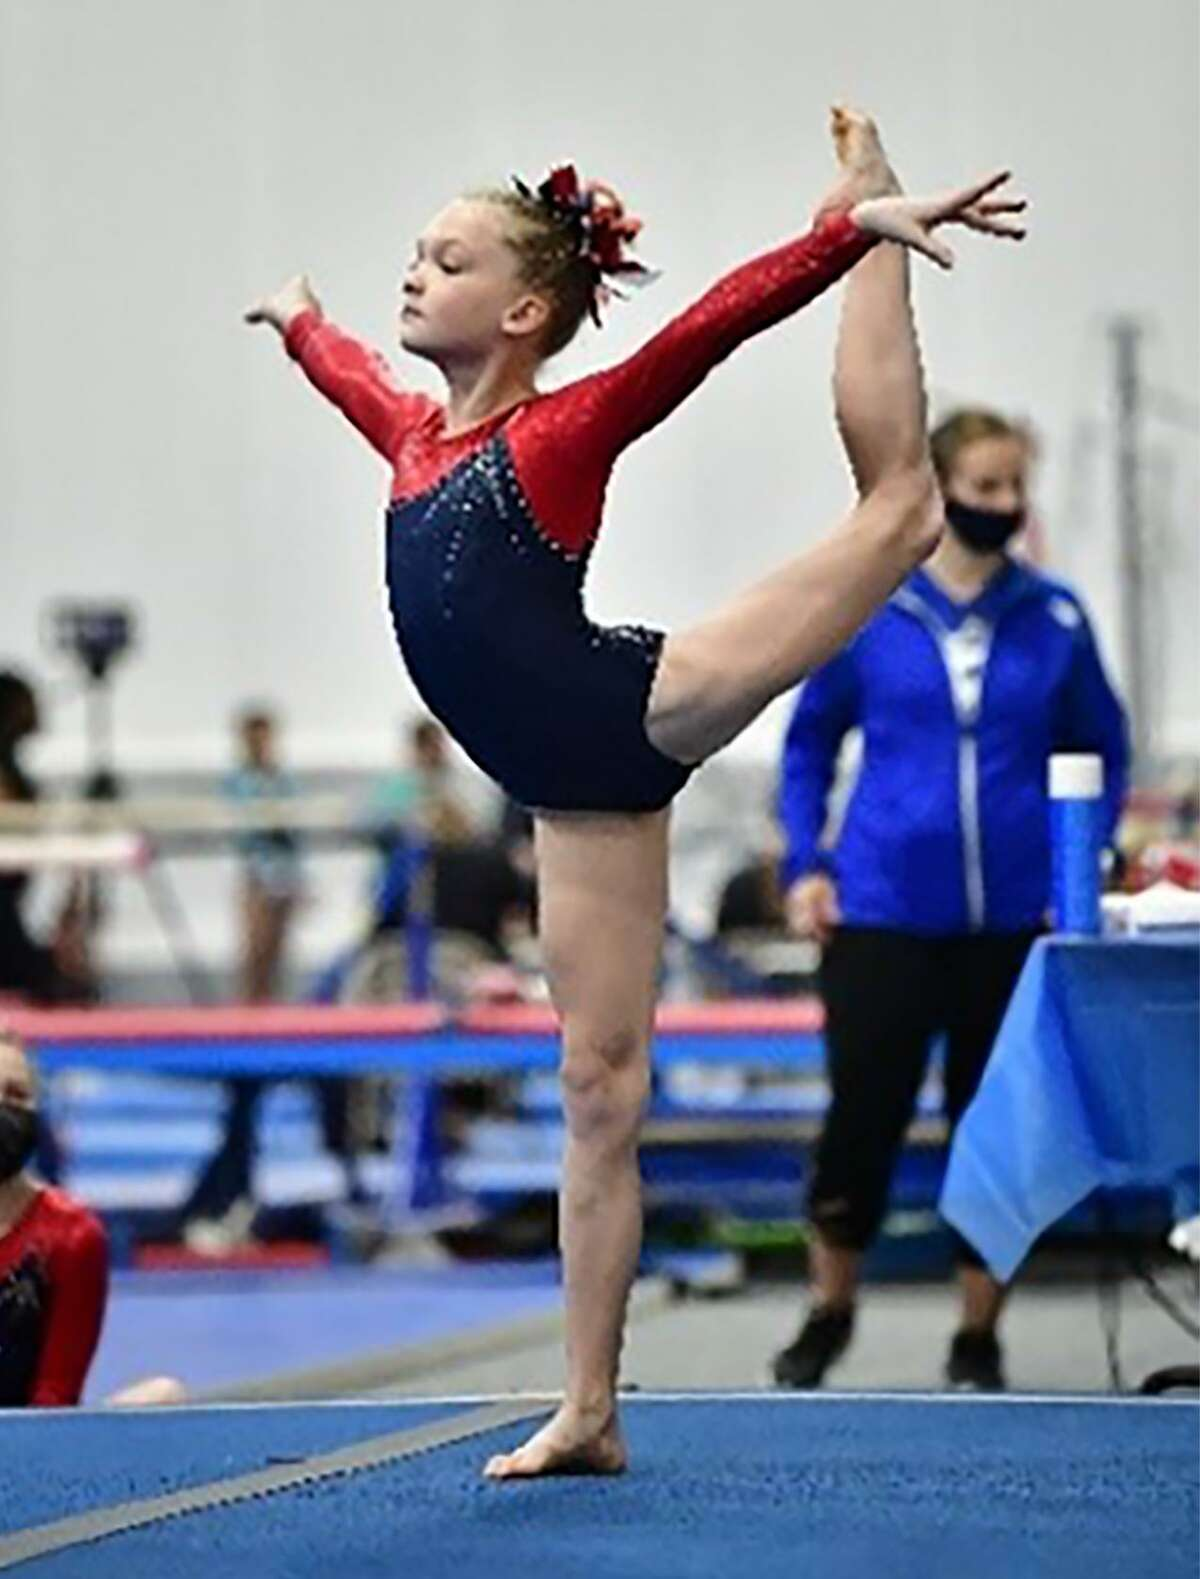 Courtney Timmeny of Darien YMCA gymnastics performs her floor routine during the Level 4-6 Connecticut State Championships, held at Farmington Valley Gymnastics in Plainville April 9-11, 2021.